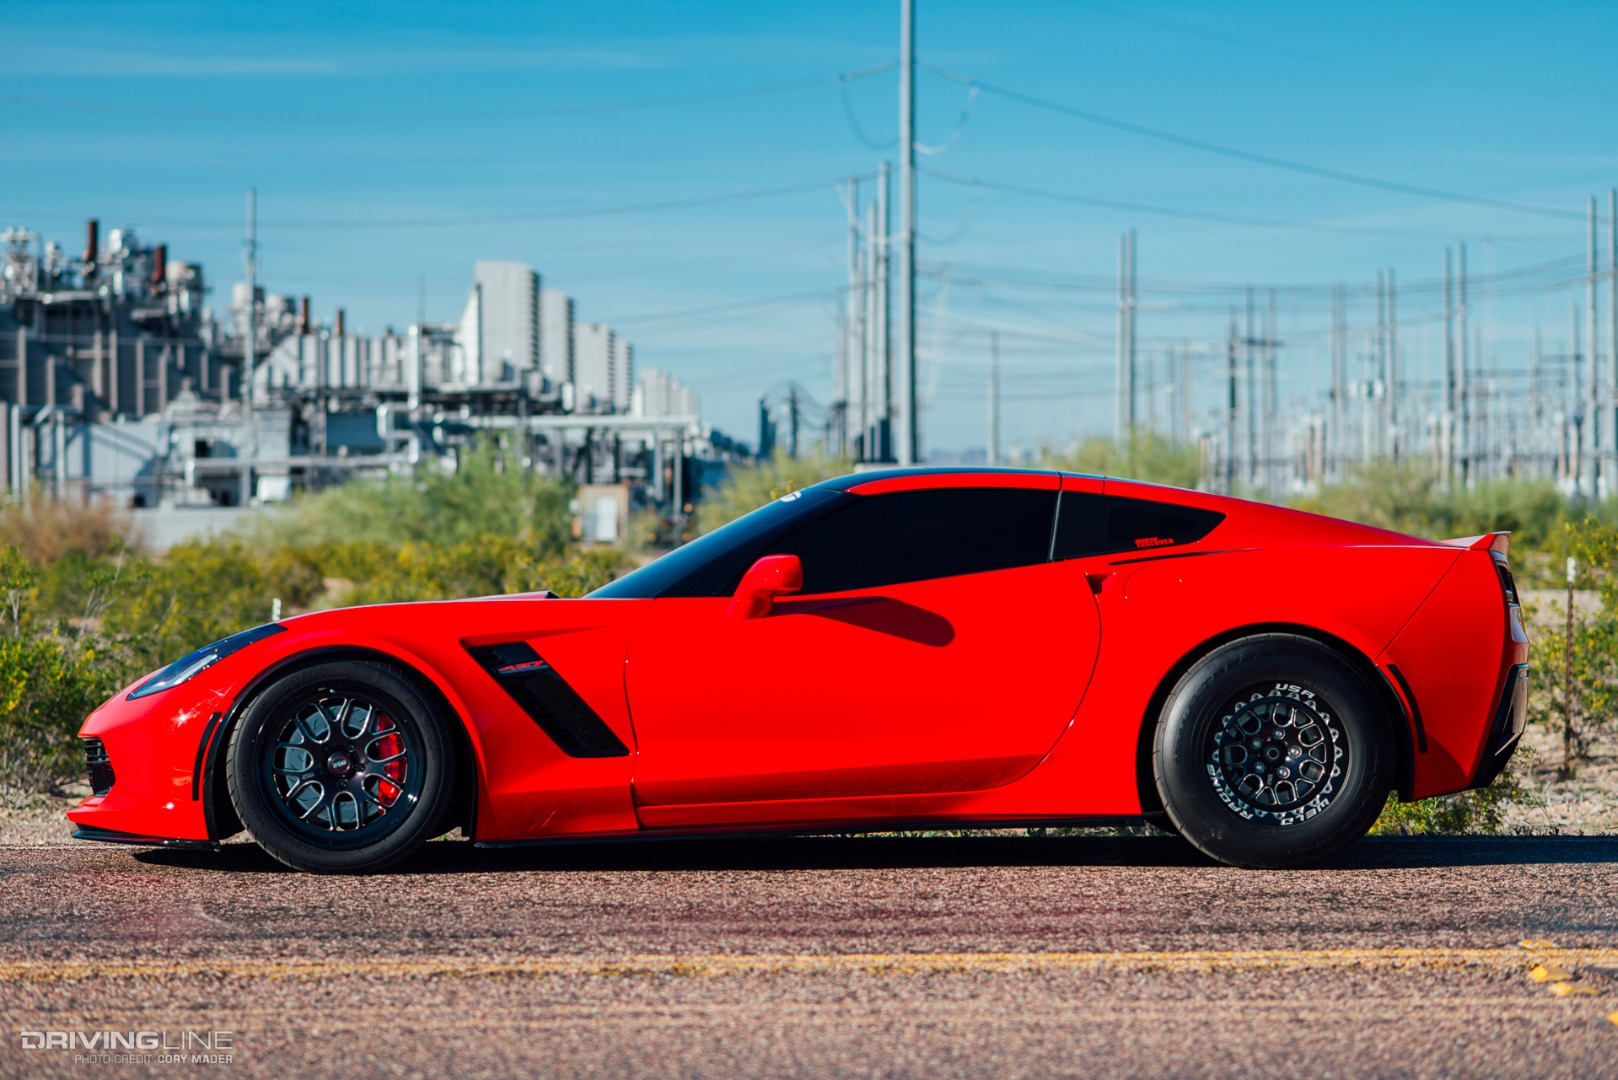 Sinister C7 Over 1 000 Horses Of Daily Driven American